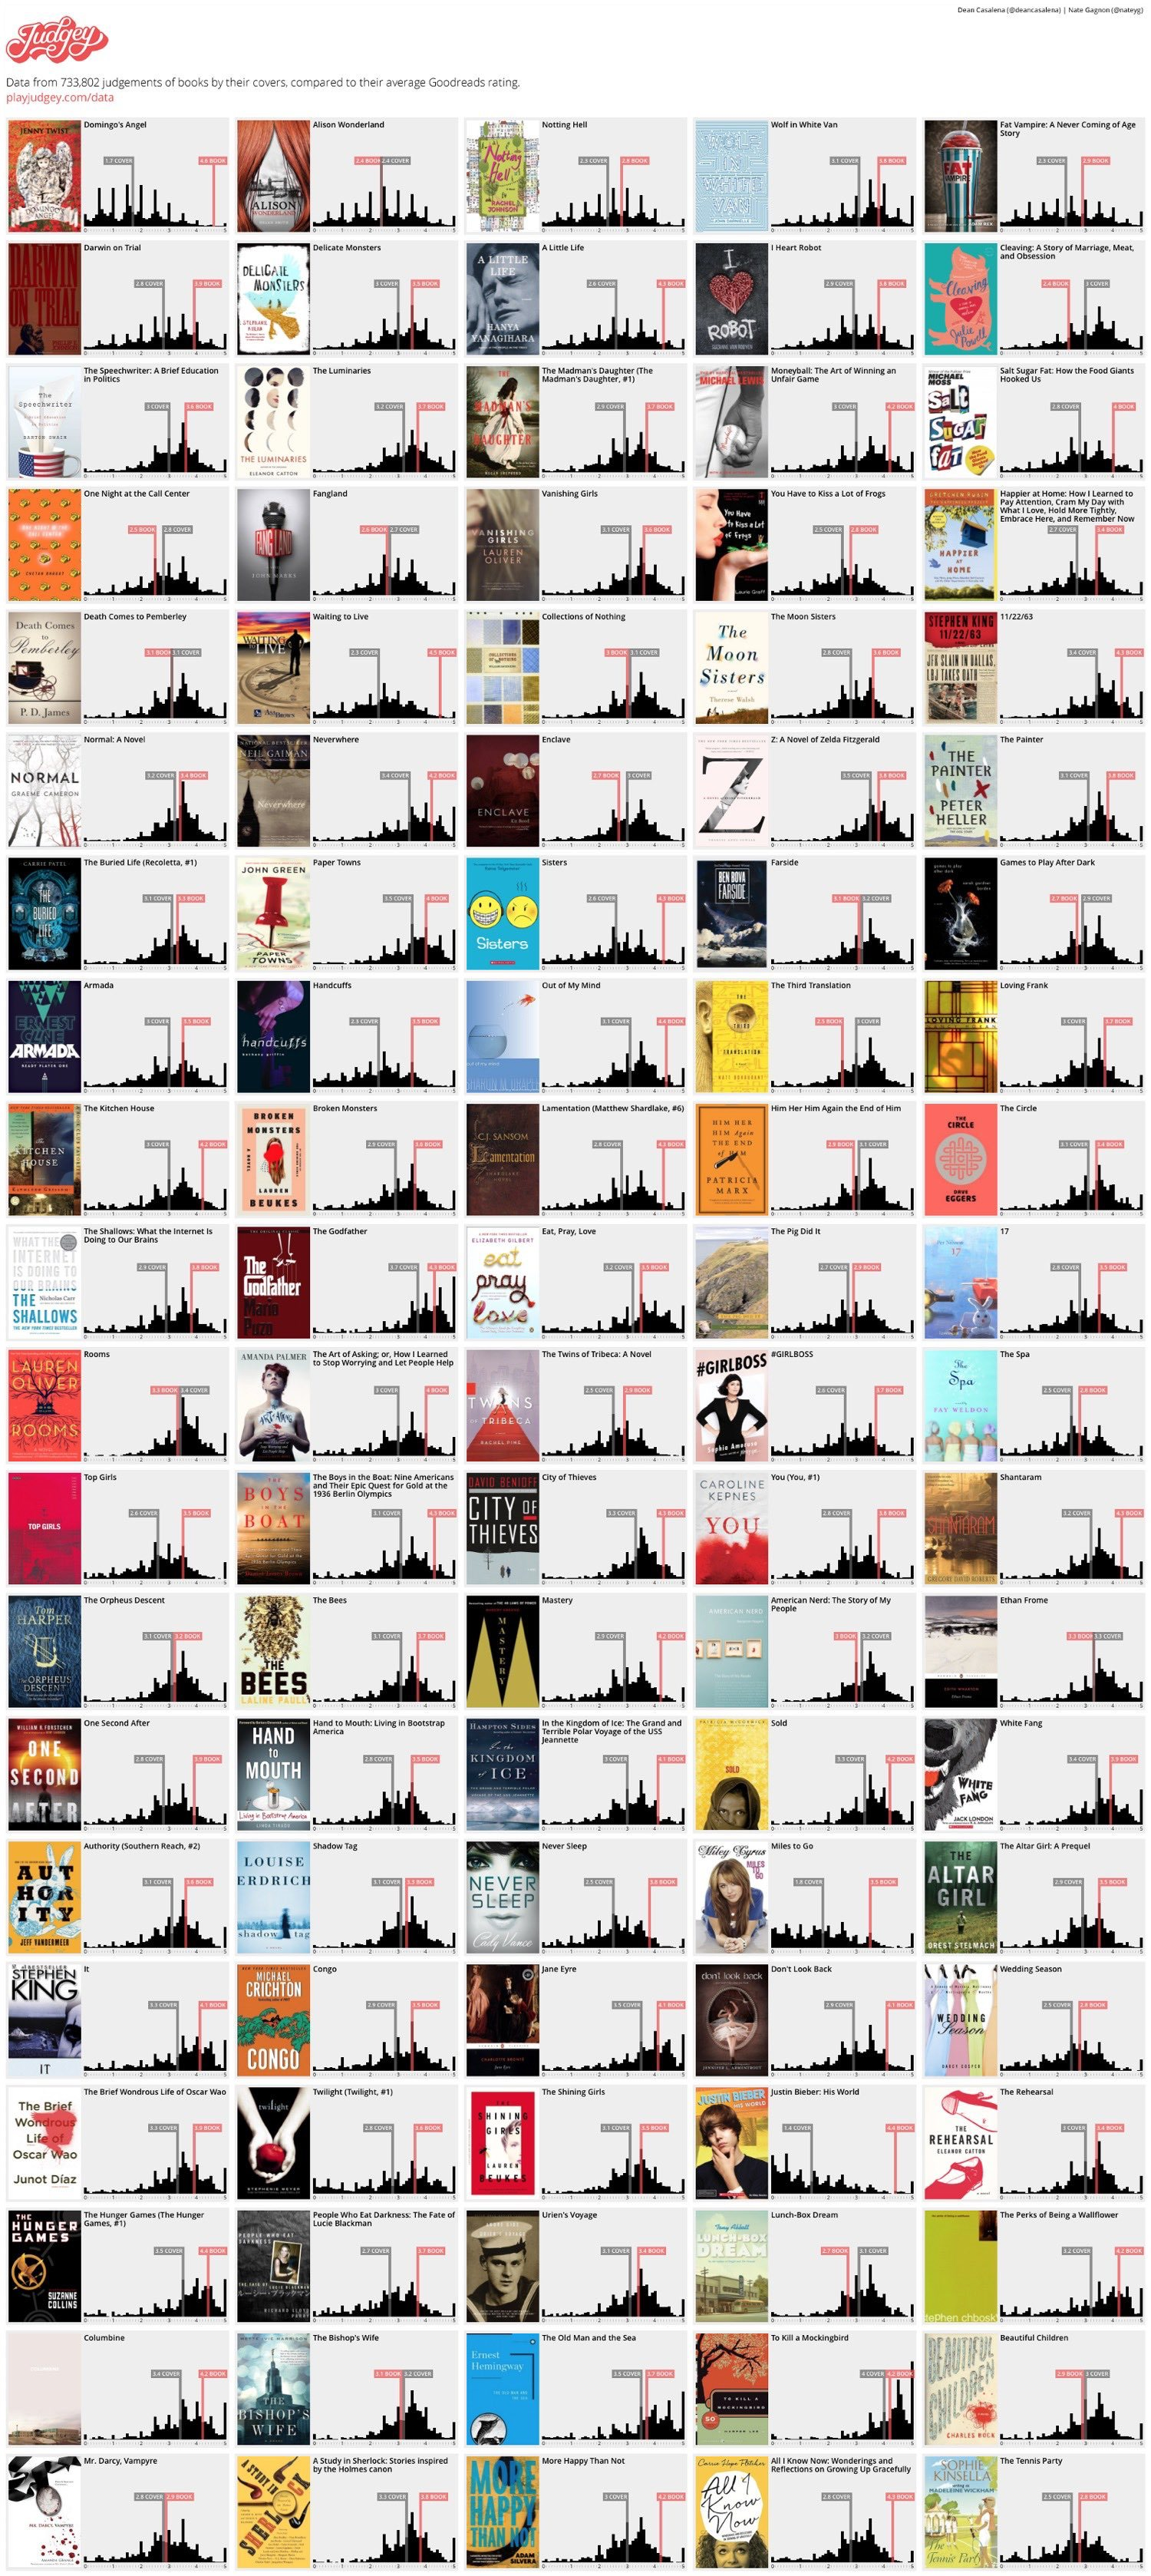 Books-judged-by-their-covers-infographic